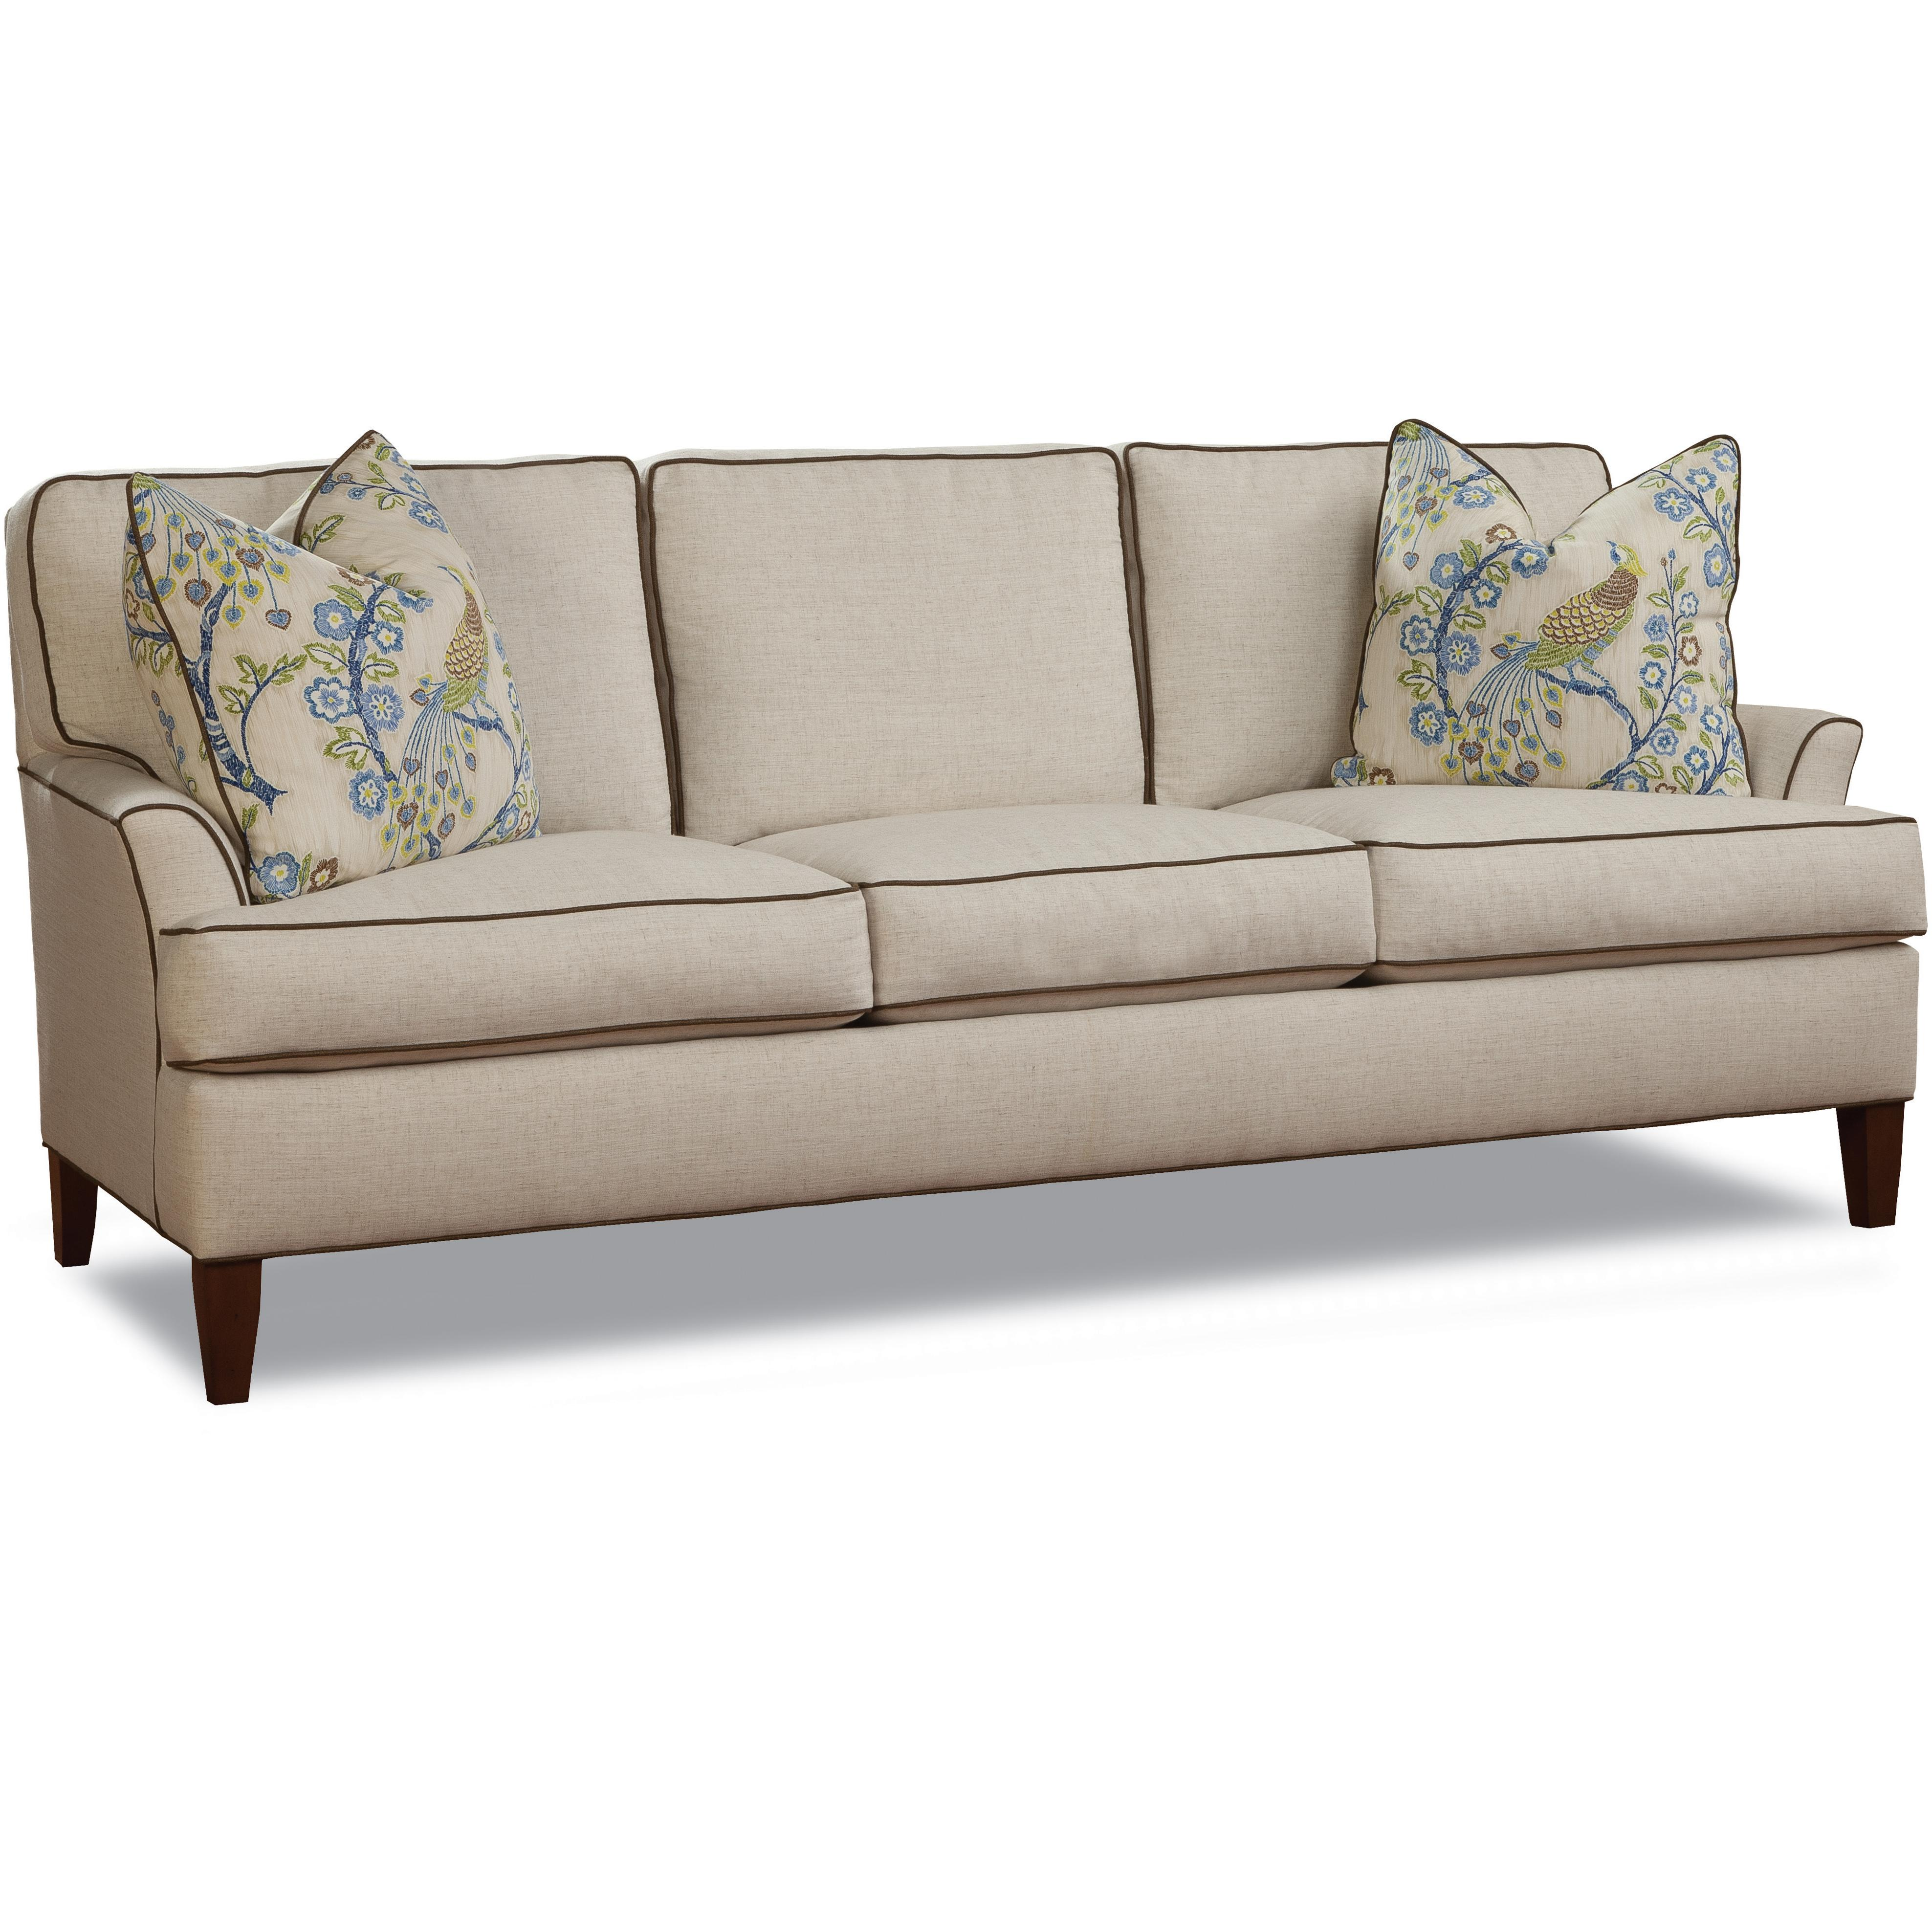 Huntington House 2031 Transitional Sofa - Item Number: 2031-20-61239-87